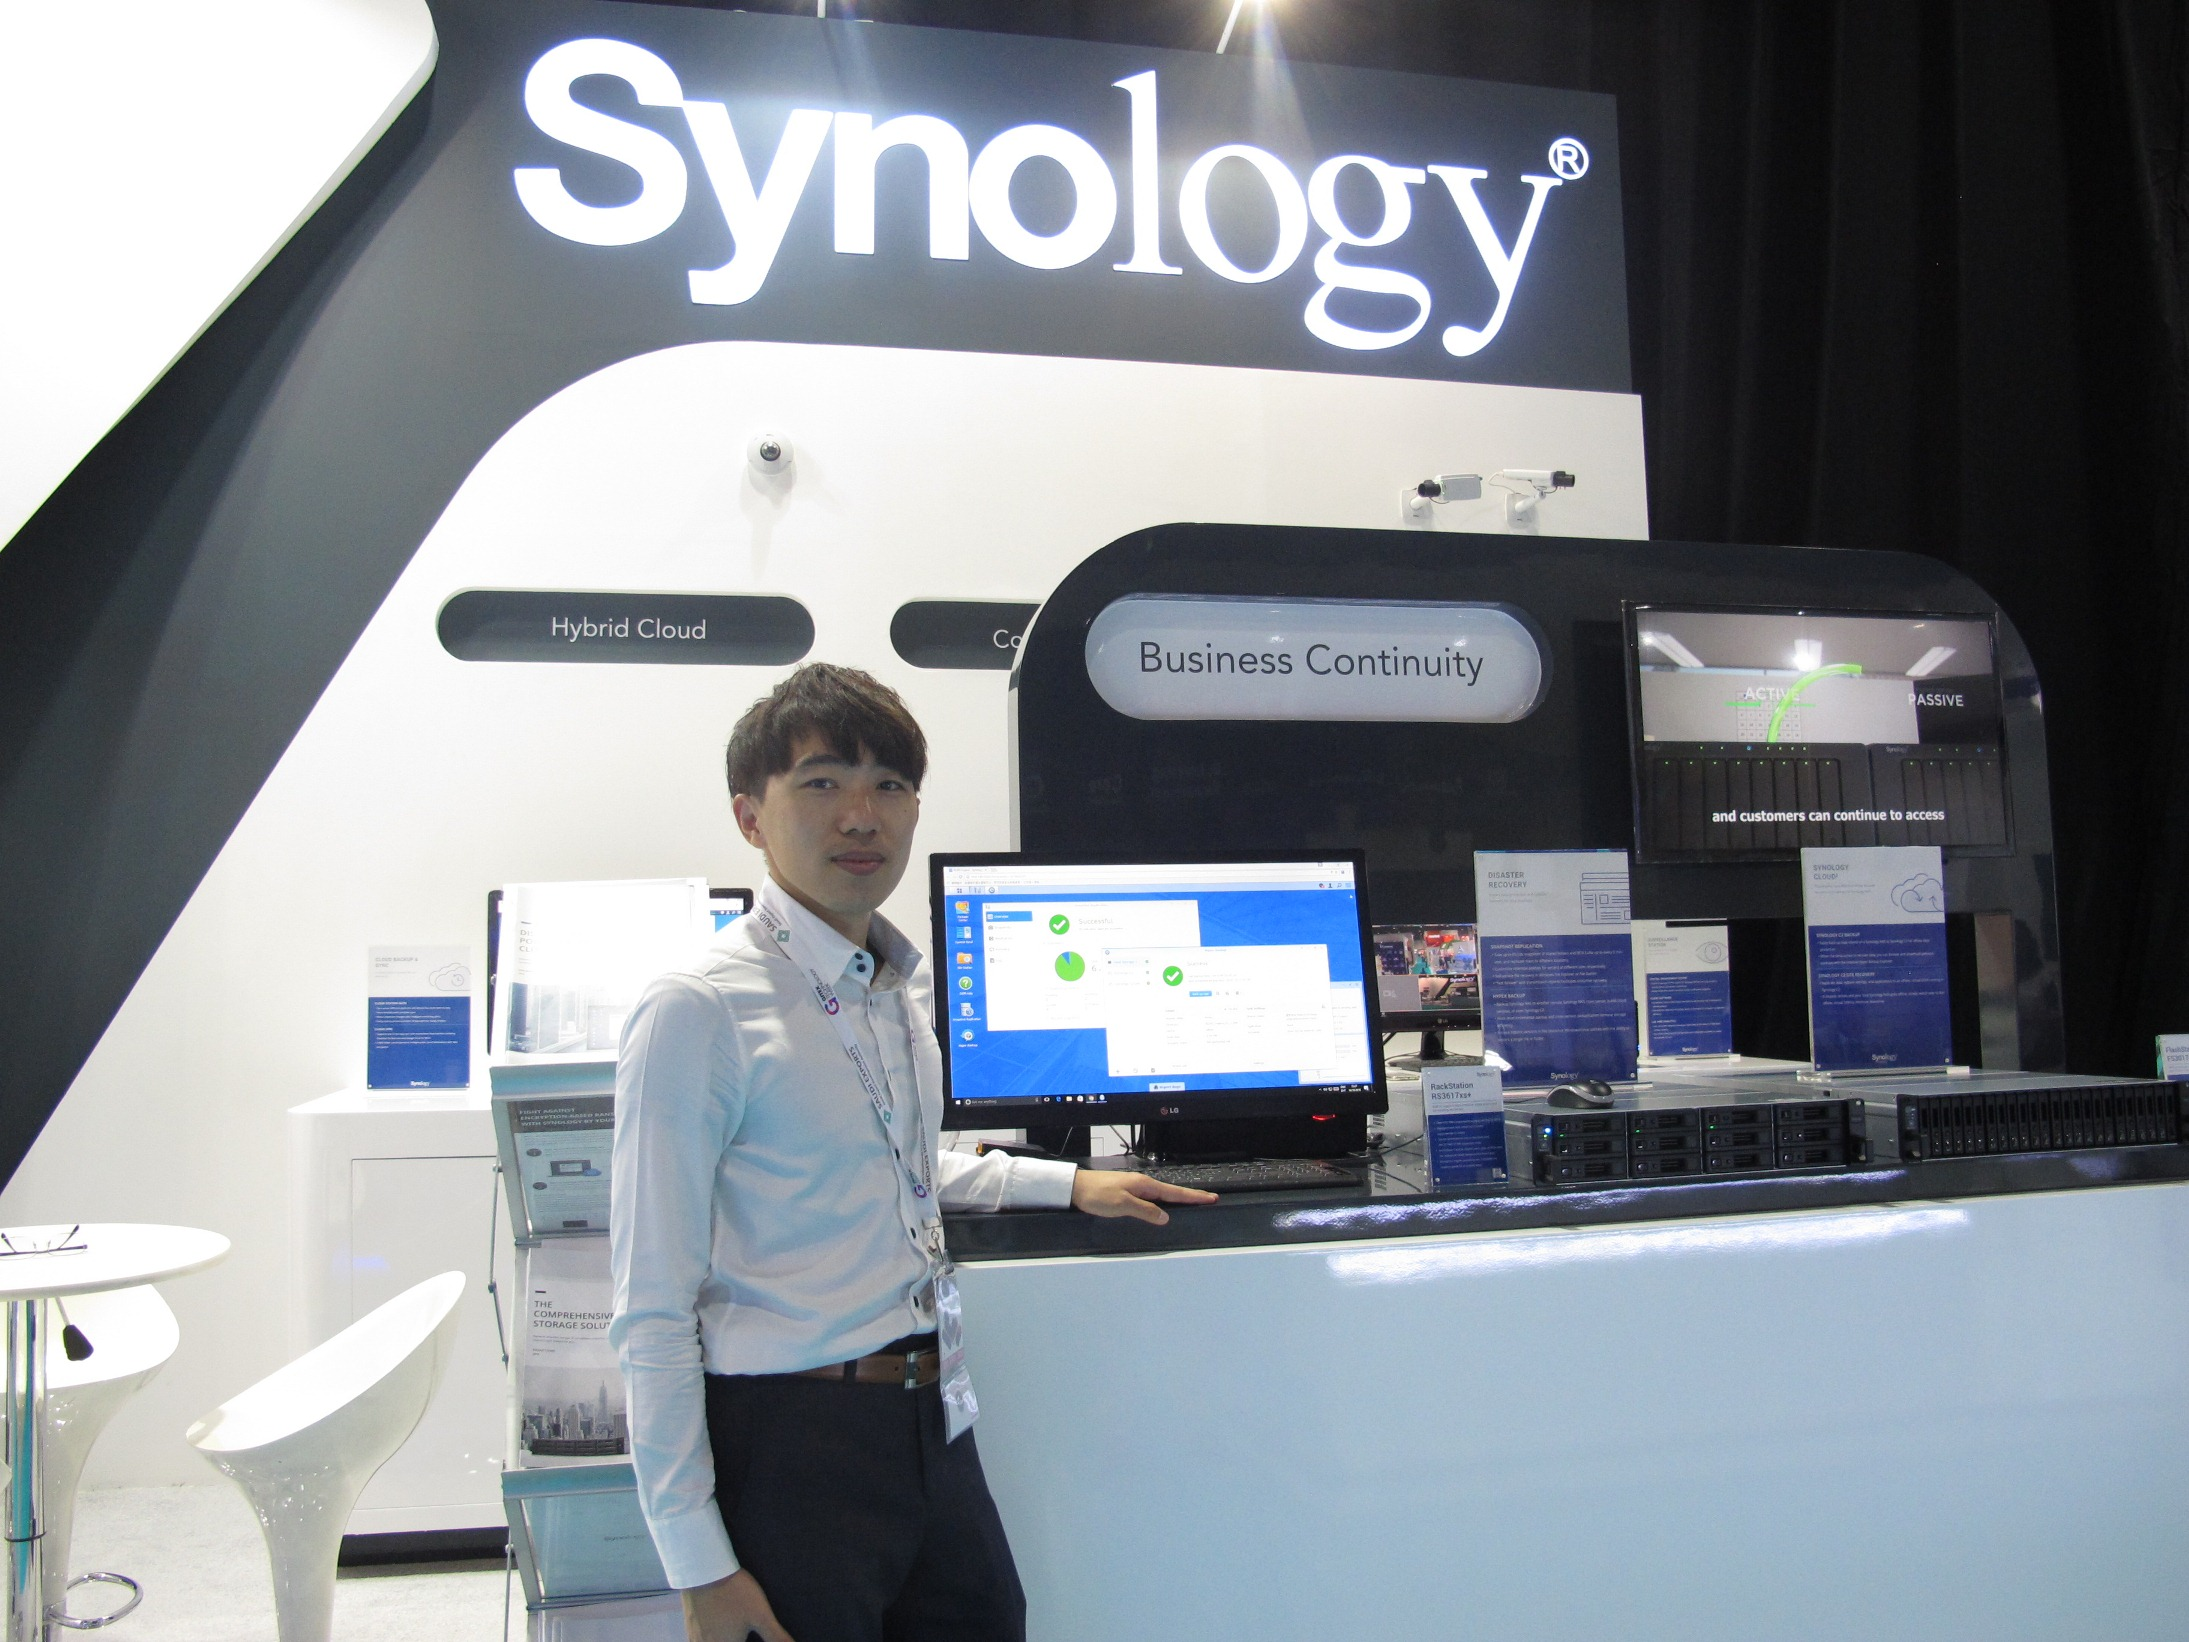 Synology: Defining the Future of Storage and Networking